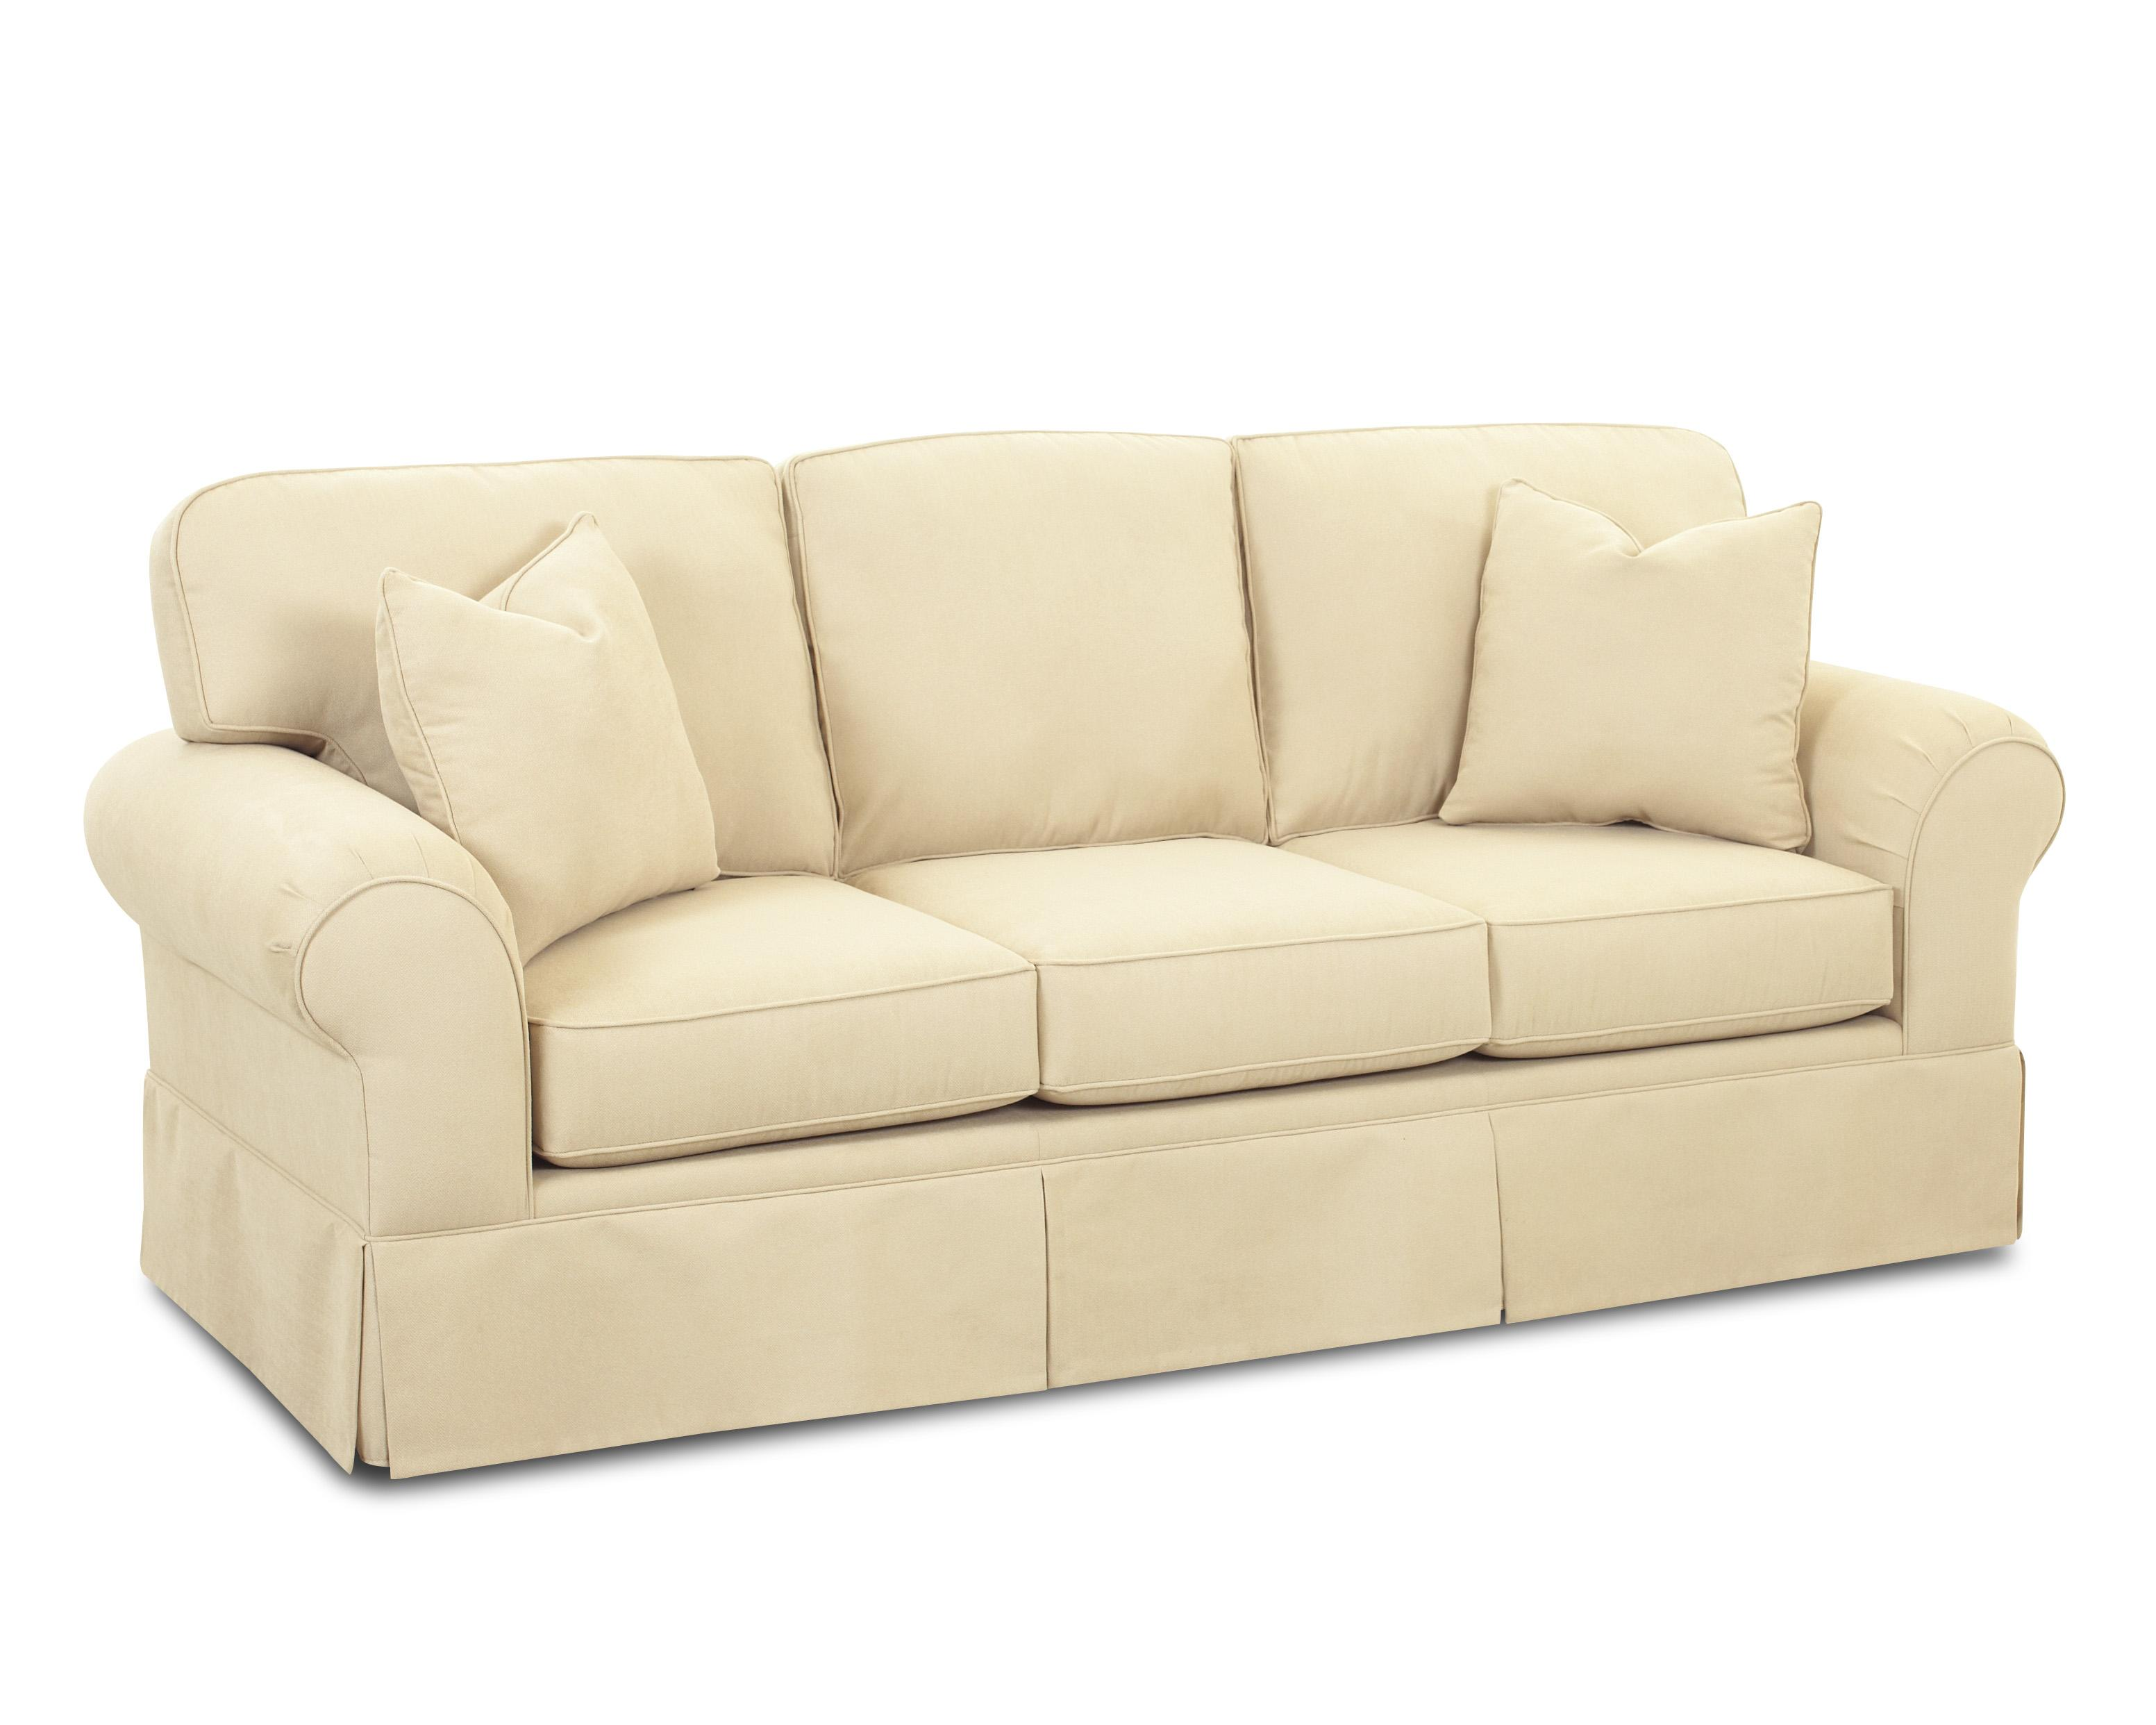 Casual skirted sofa by klaussner wolf and gardiner wolf for Sectional sofas wolf furniture